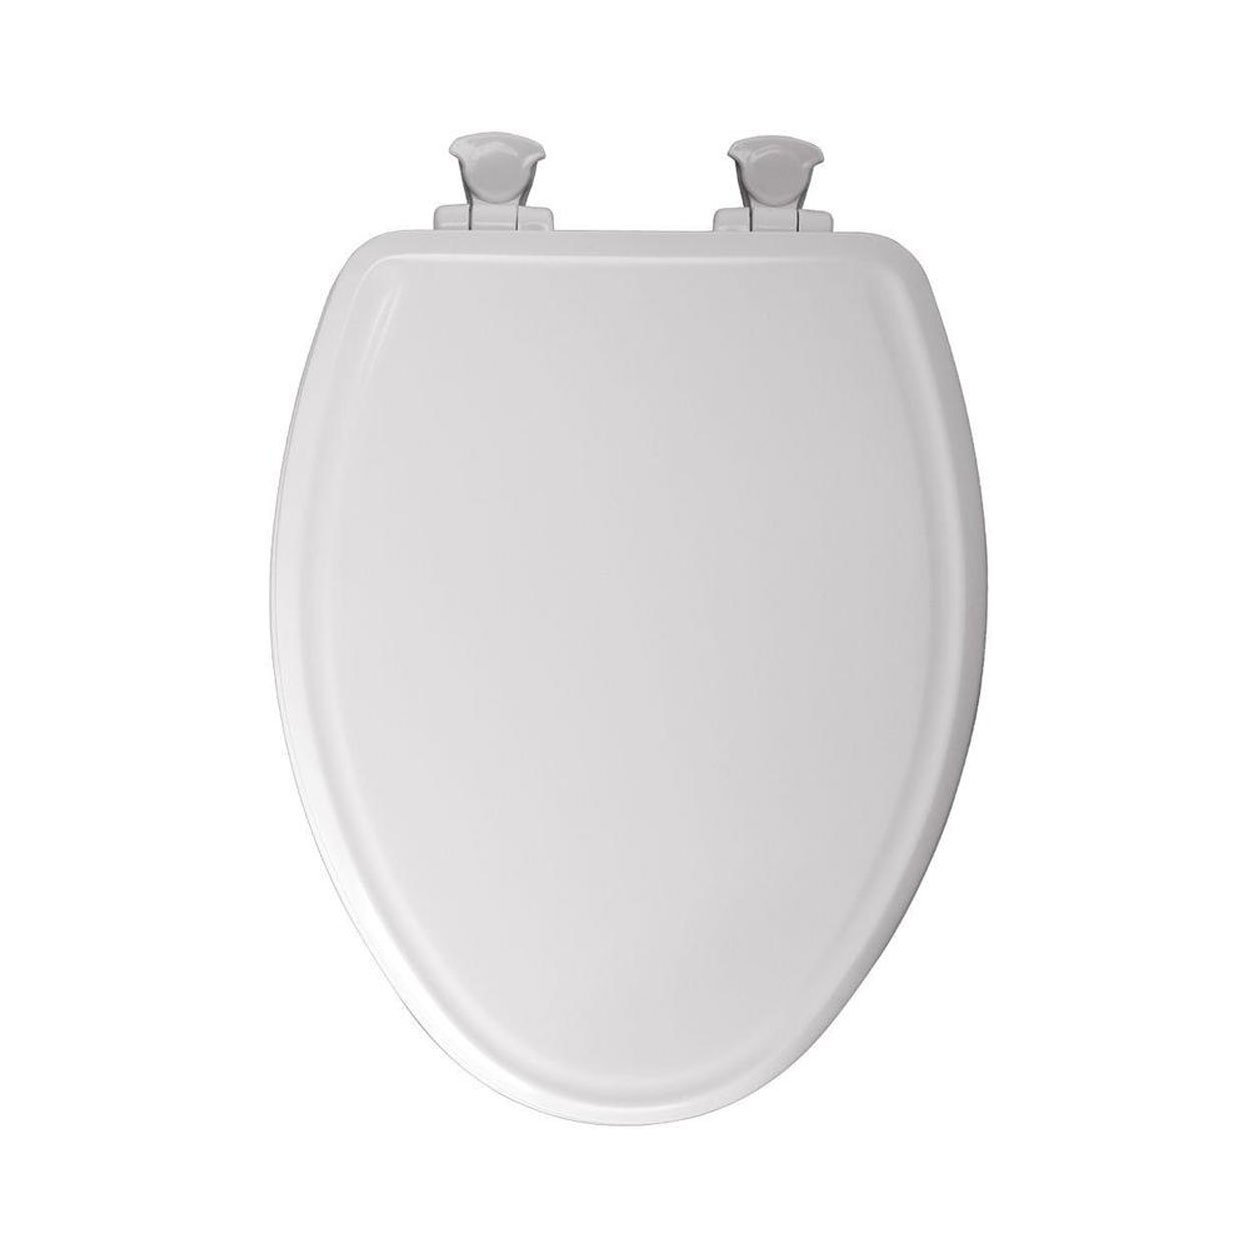 Church 685E3 000 Residential Elongated Molded Wood Toilet Seat with Whisper Close, White